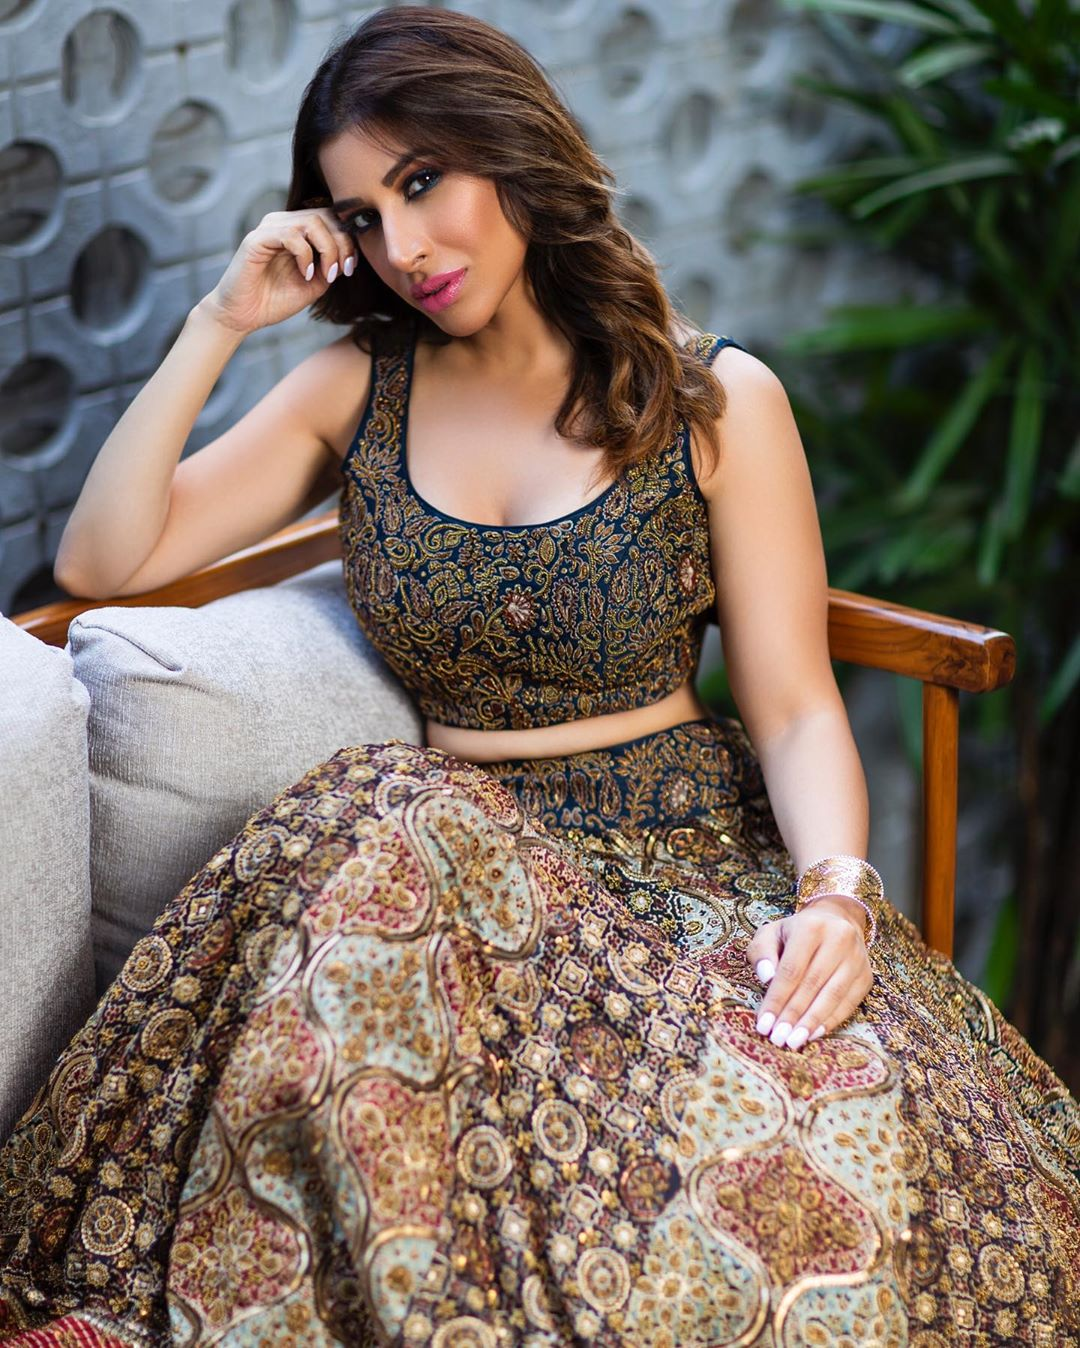 Sophie choudry 1